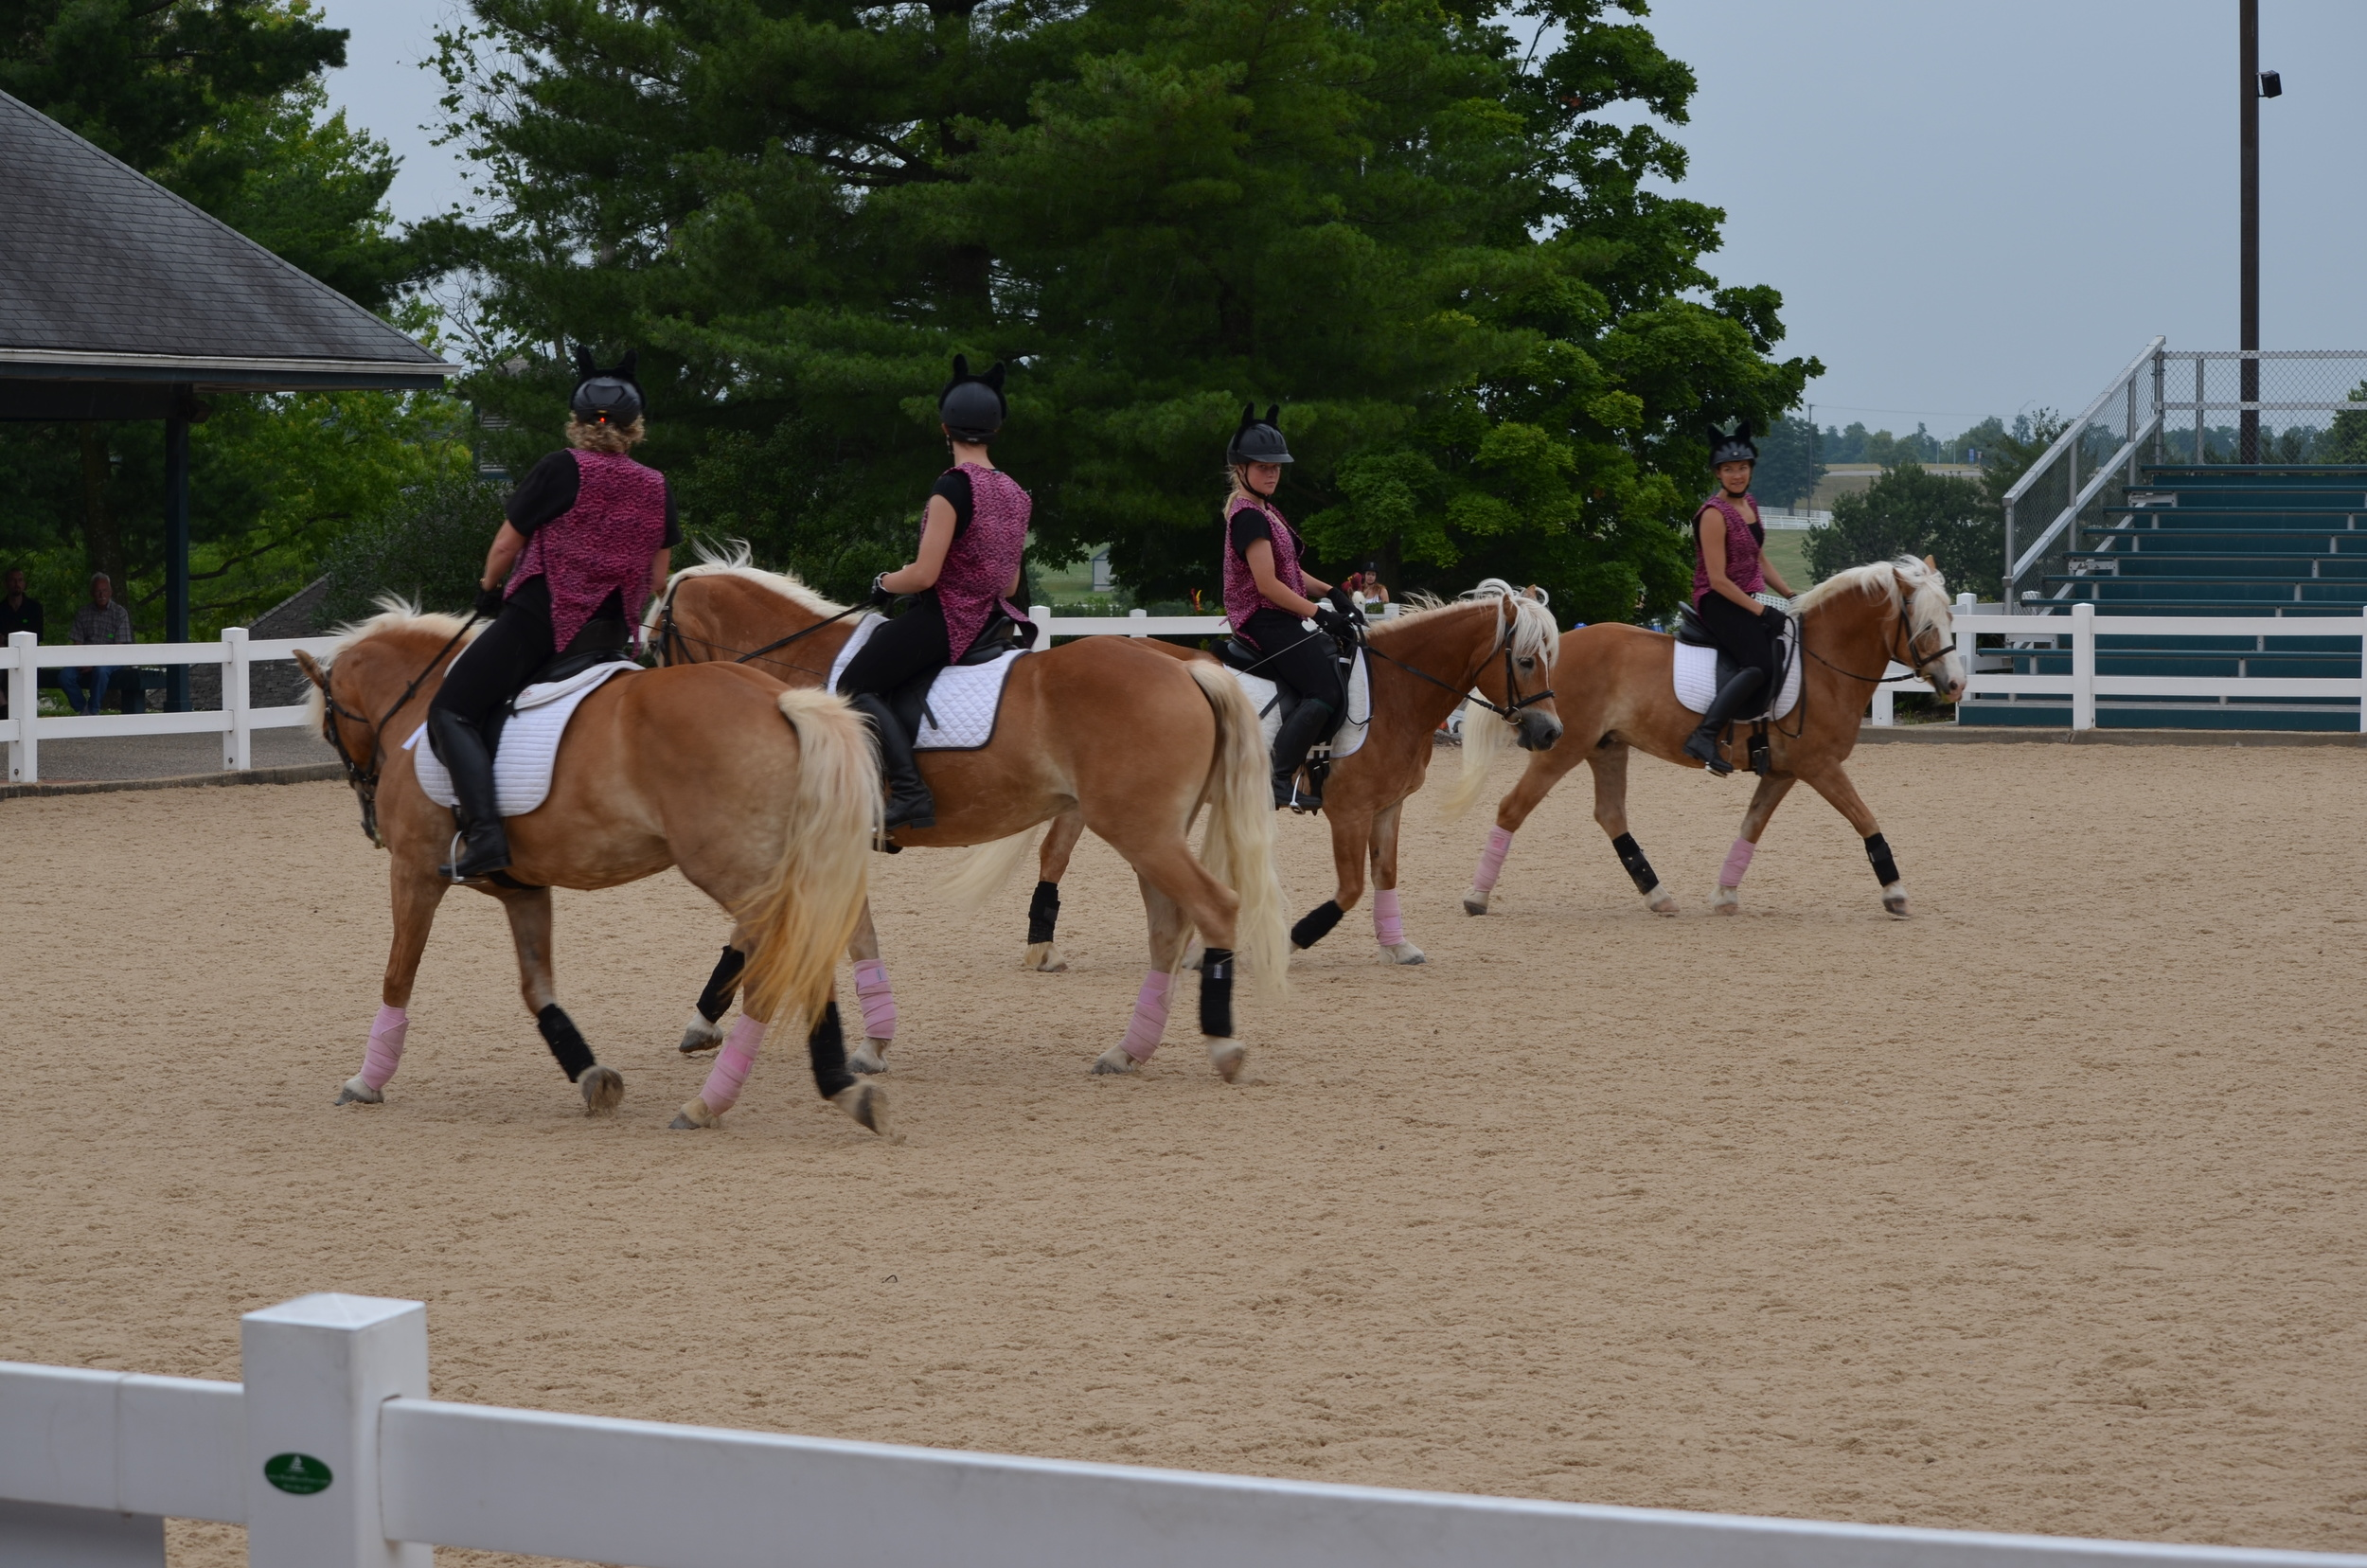 The Happy Haflingers quadrille performing at the Kentucky Horse Park